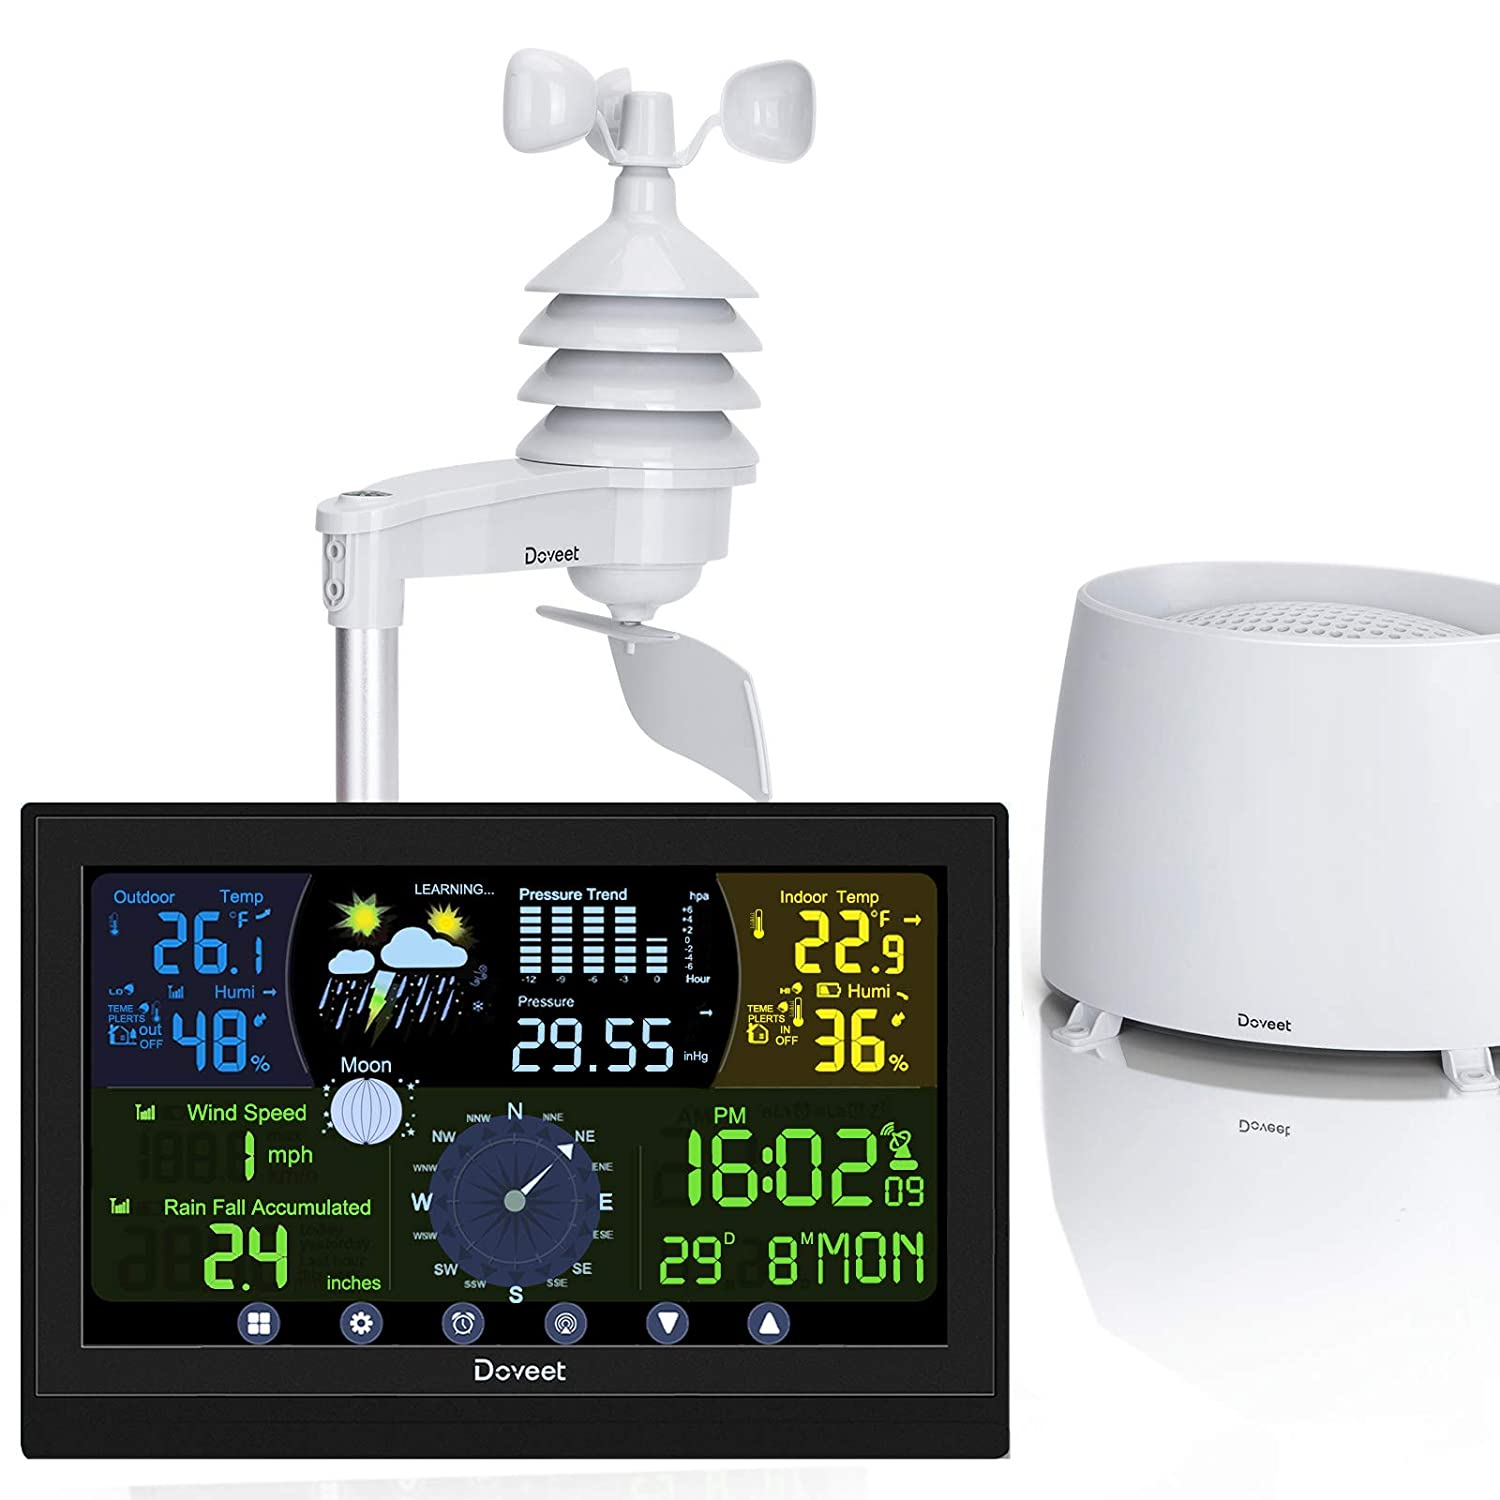 Weather Station with Outdoor Sensors, Wireless Weather Stations with Rain Gauge, Wind Speed Gauge, Weather Forecast, Air Pressure, Indoor Outdoor Temperature & Humidity, Moon Phase, Alarm Clock